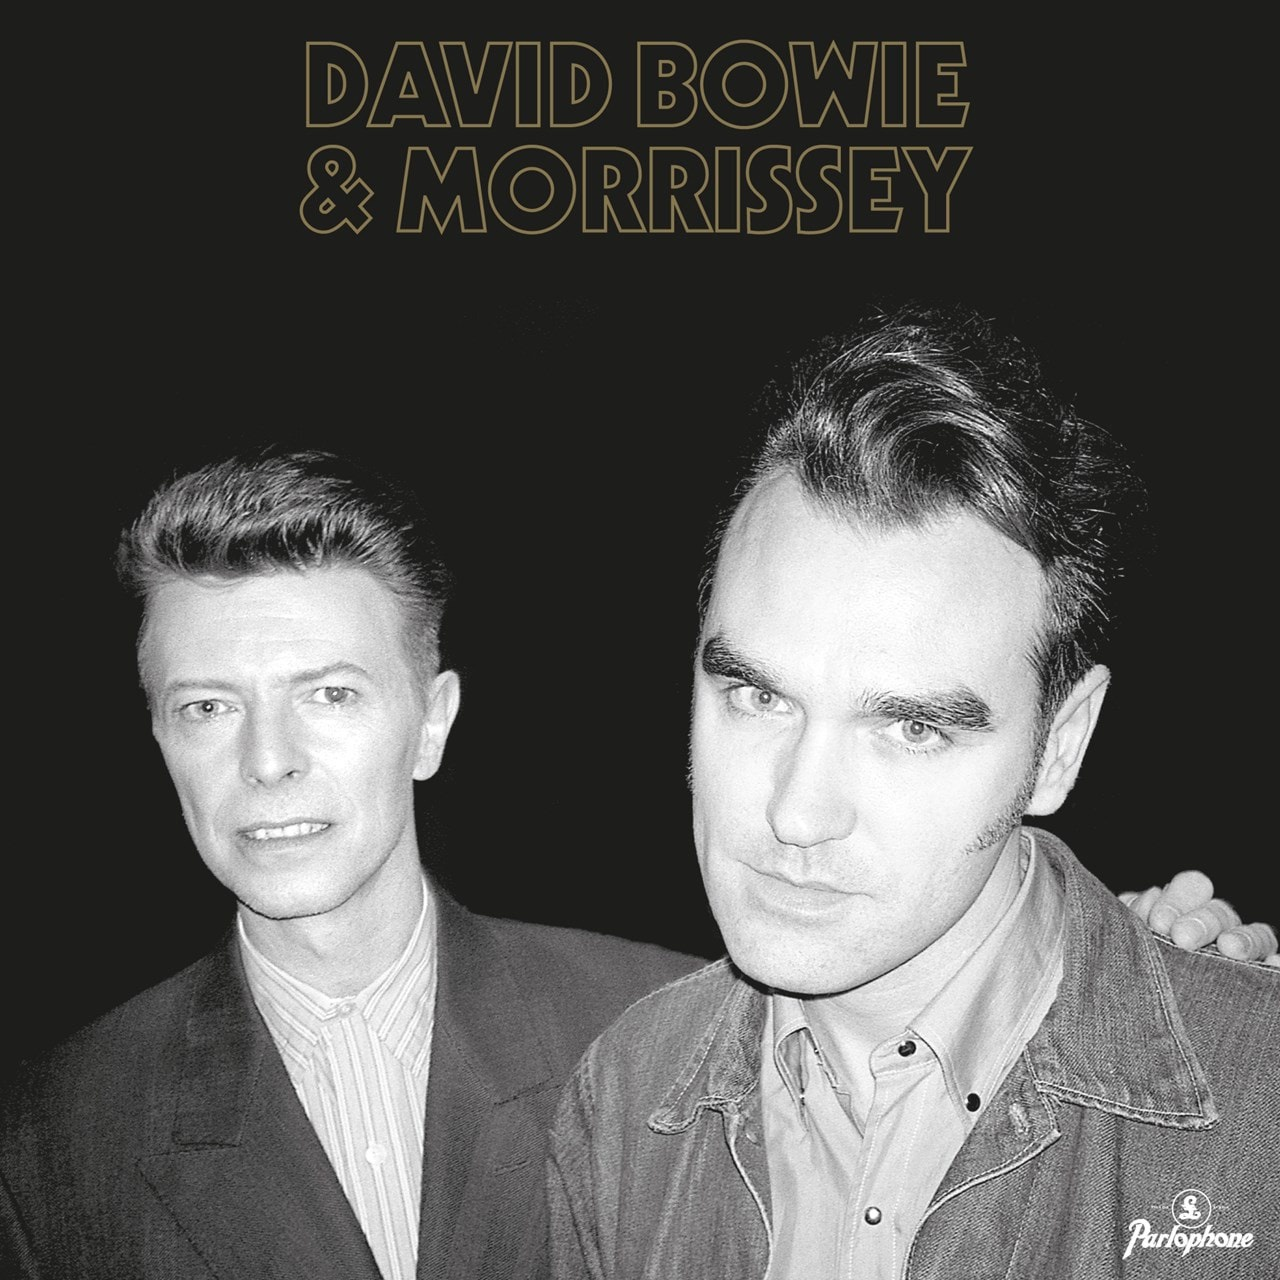 David Bowie and Morrissey / Cosmic Dancer